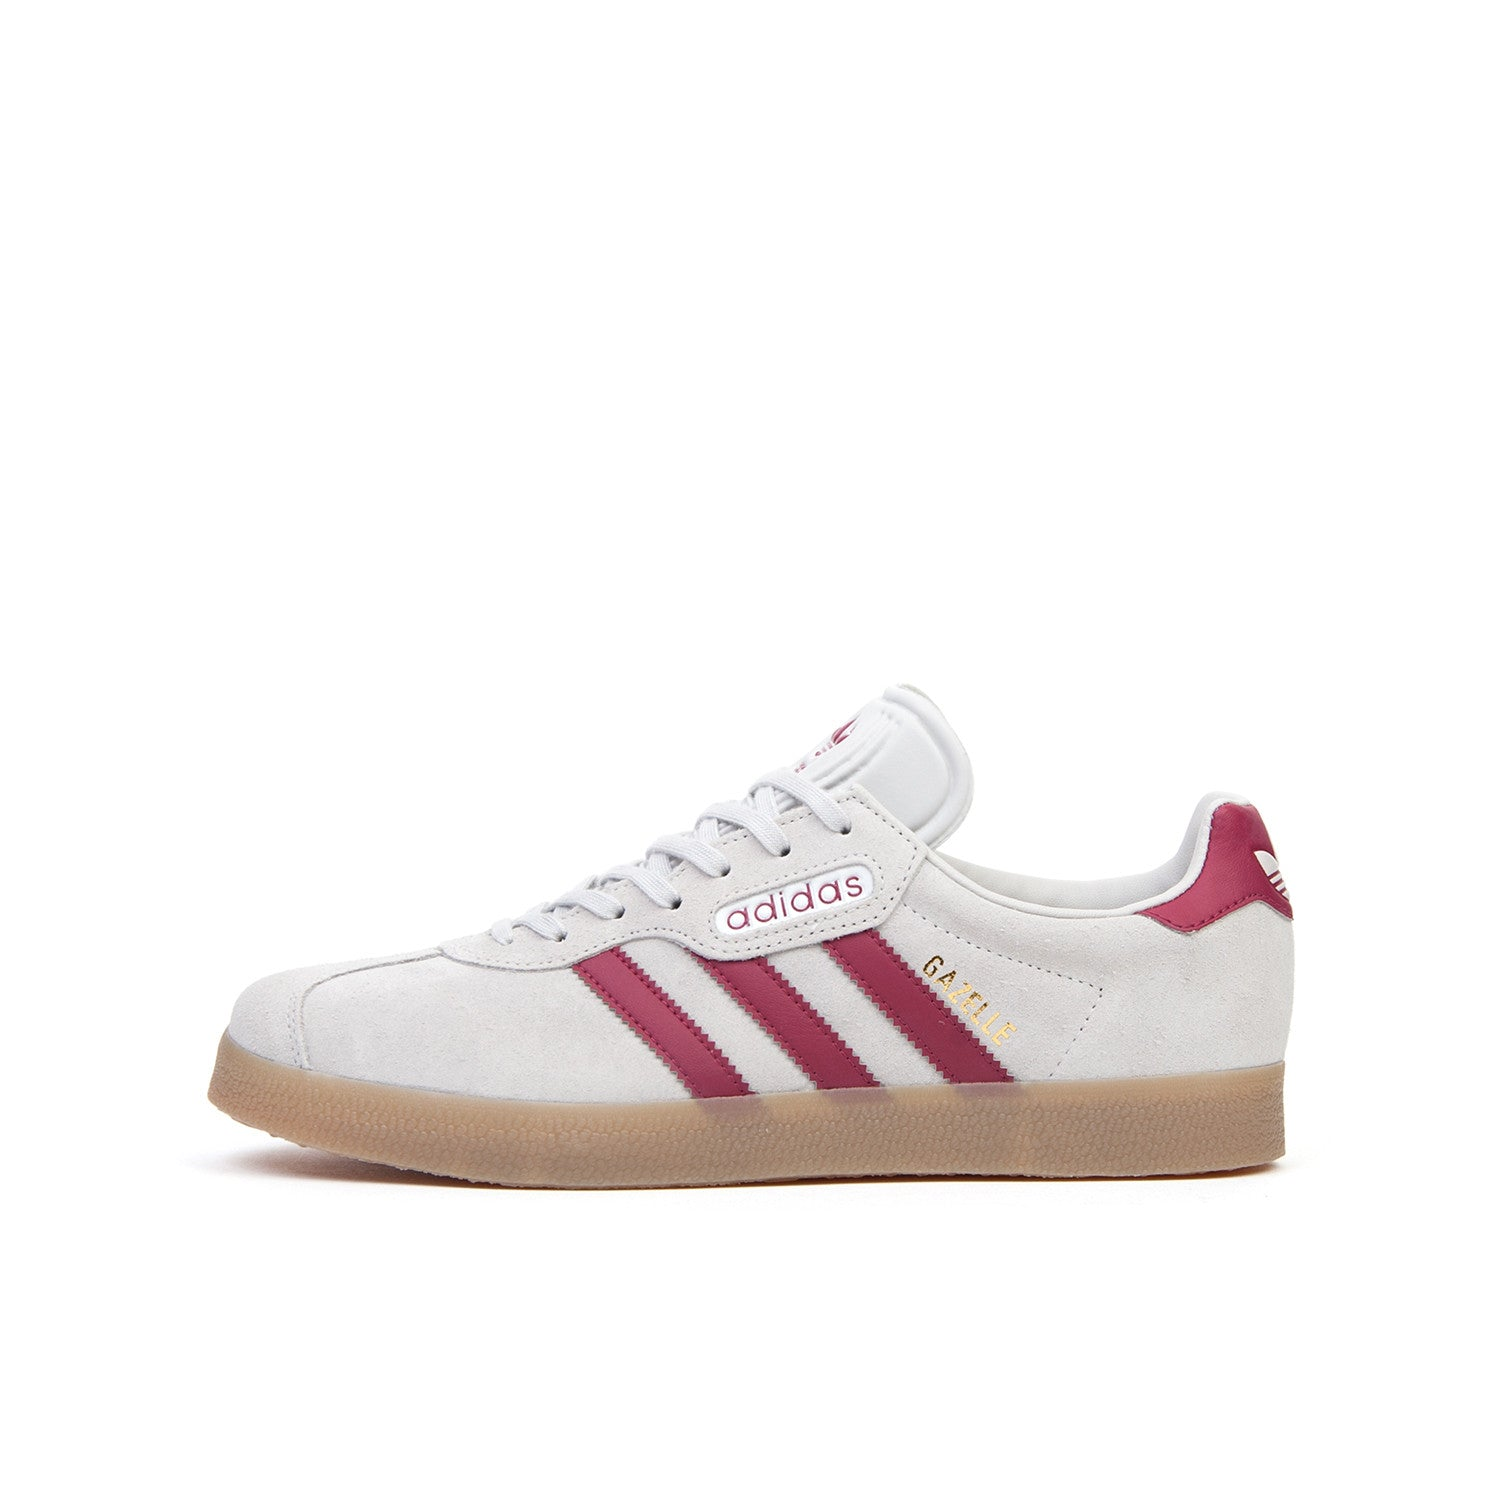 adidas Originals Gazelle Super Grey/Mystery Rubin - Concrete